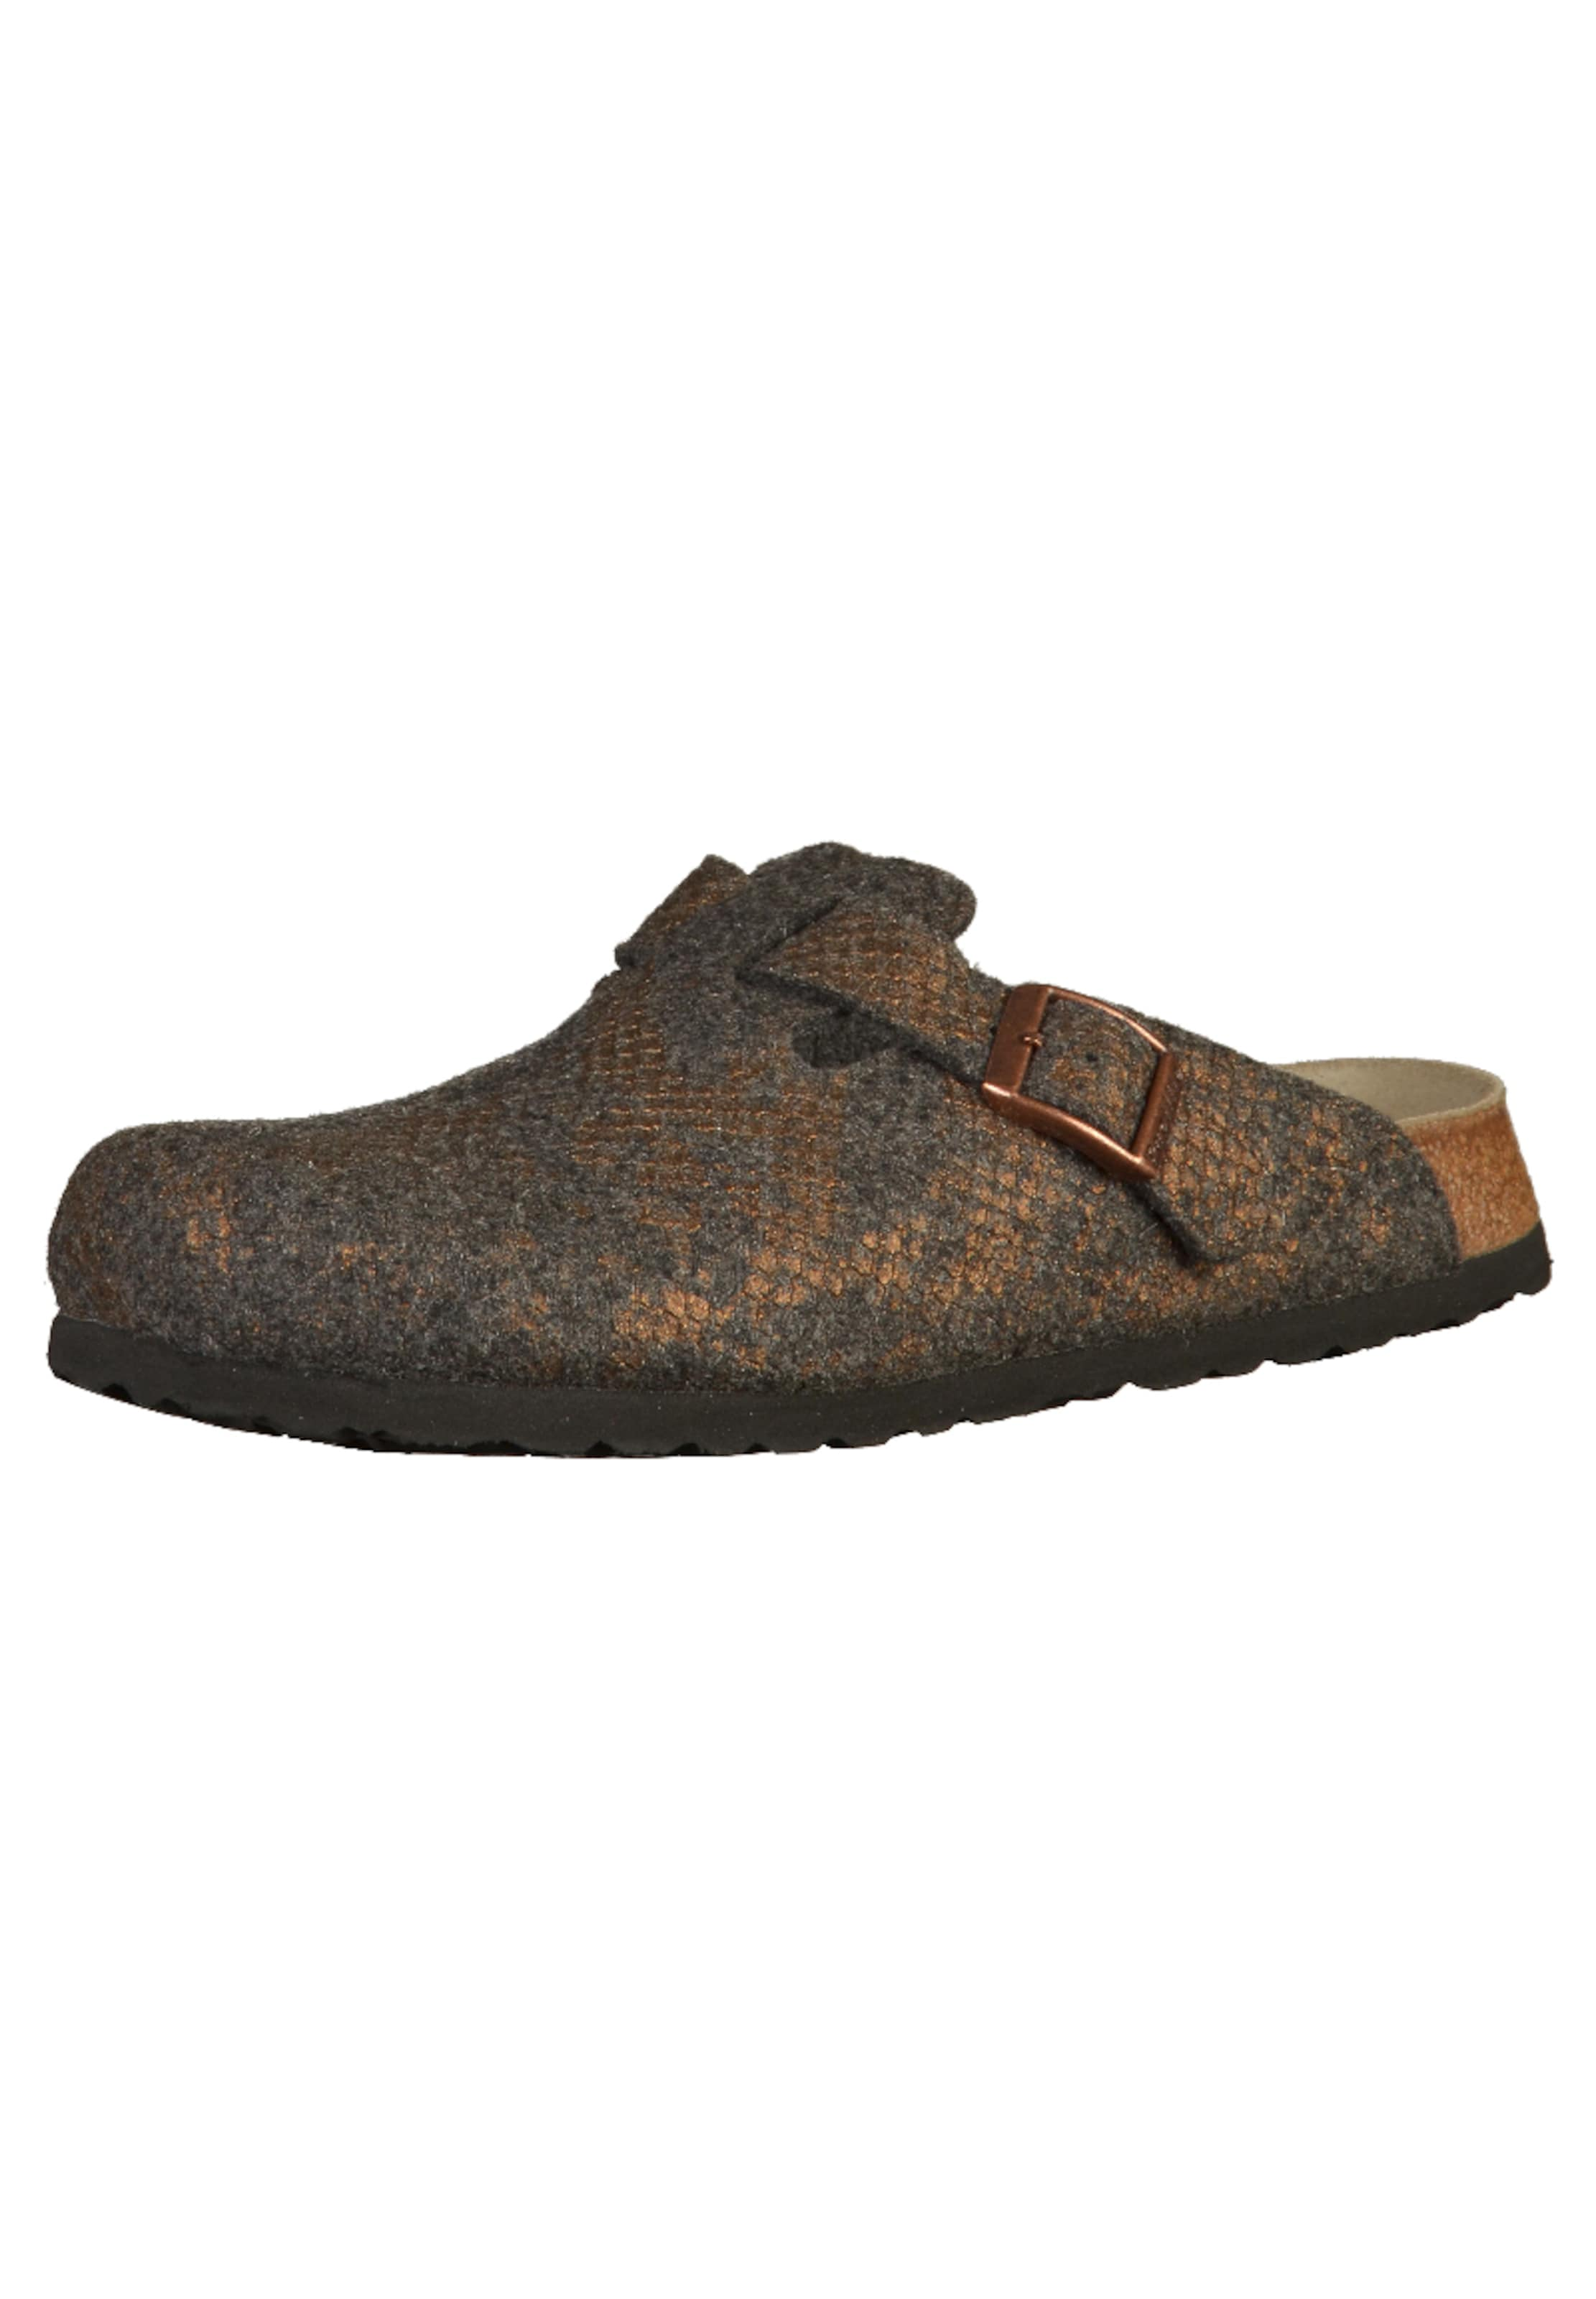 Papillio Clogs In BronzeGrau BronzeGrau 'boston' 'boston' Clogs Papillio Clogs Papillio In 'boston' In OP80wnkX